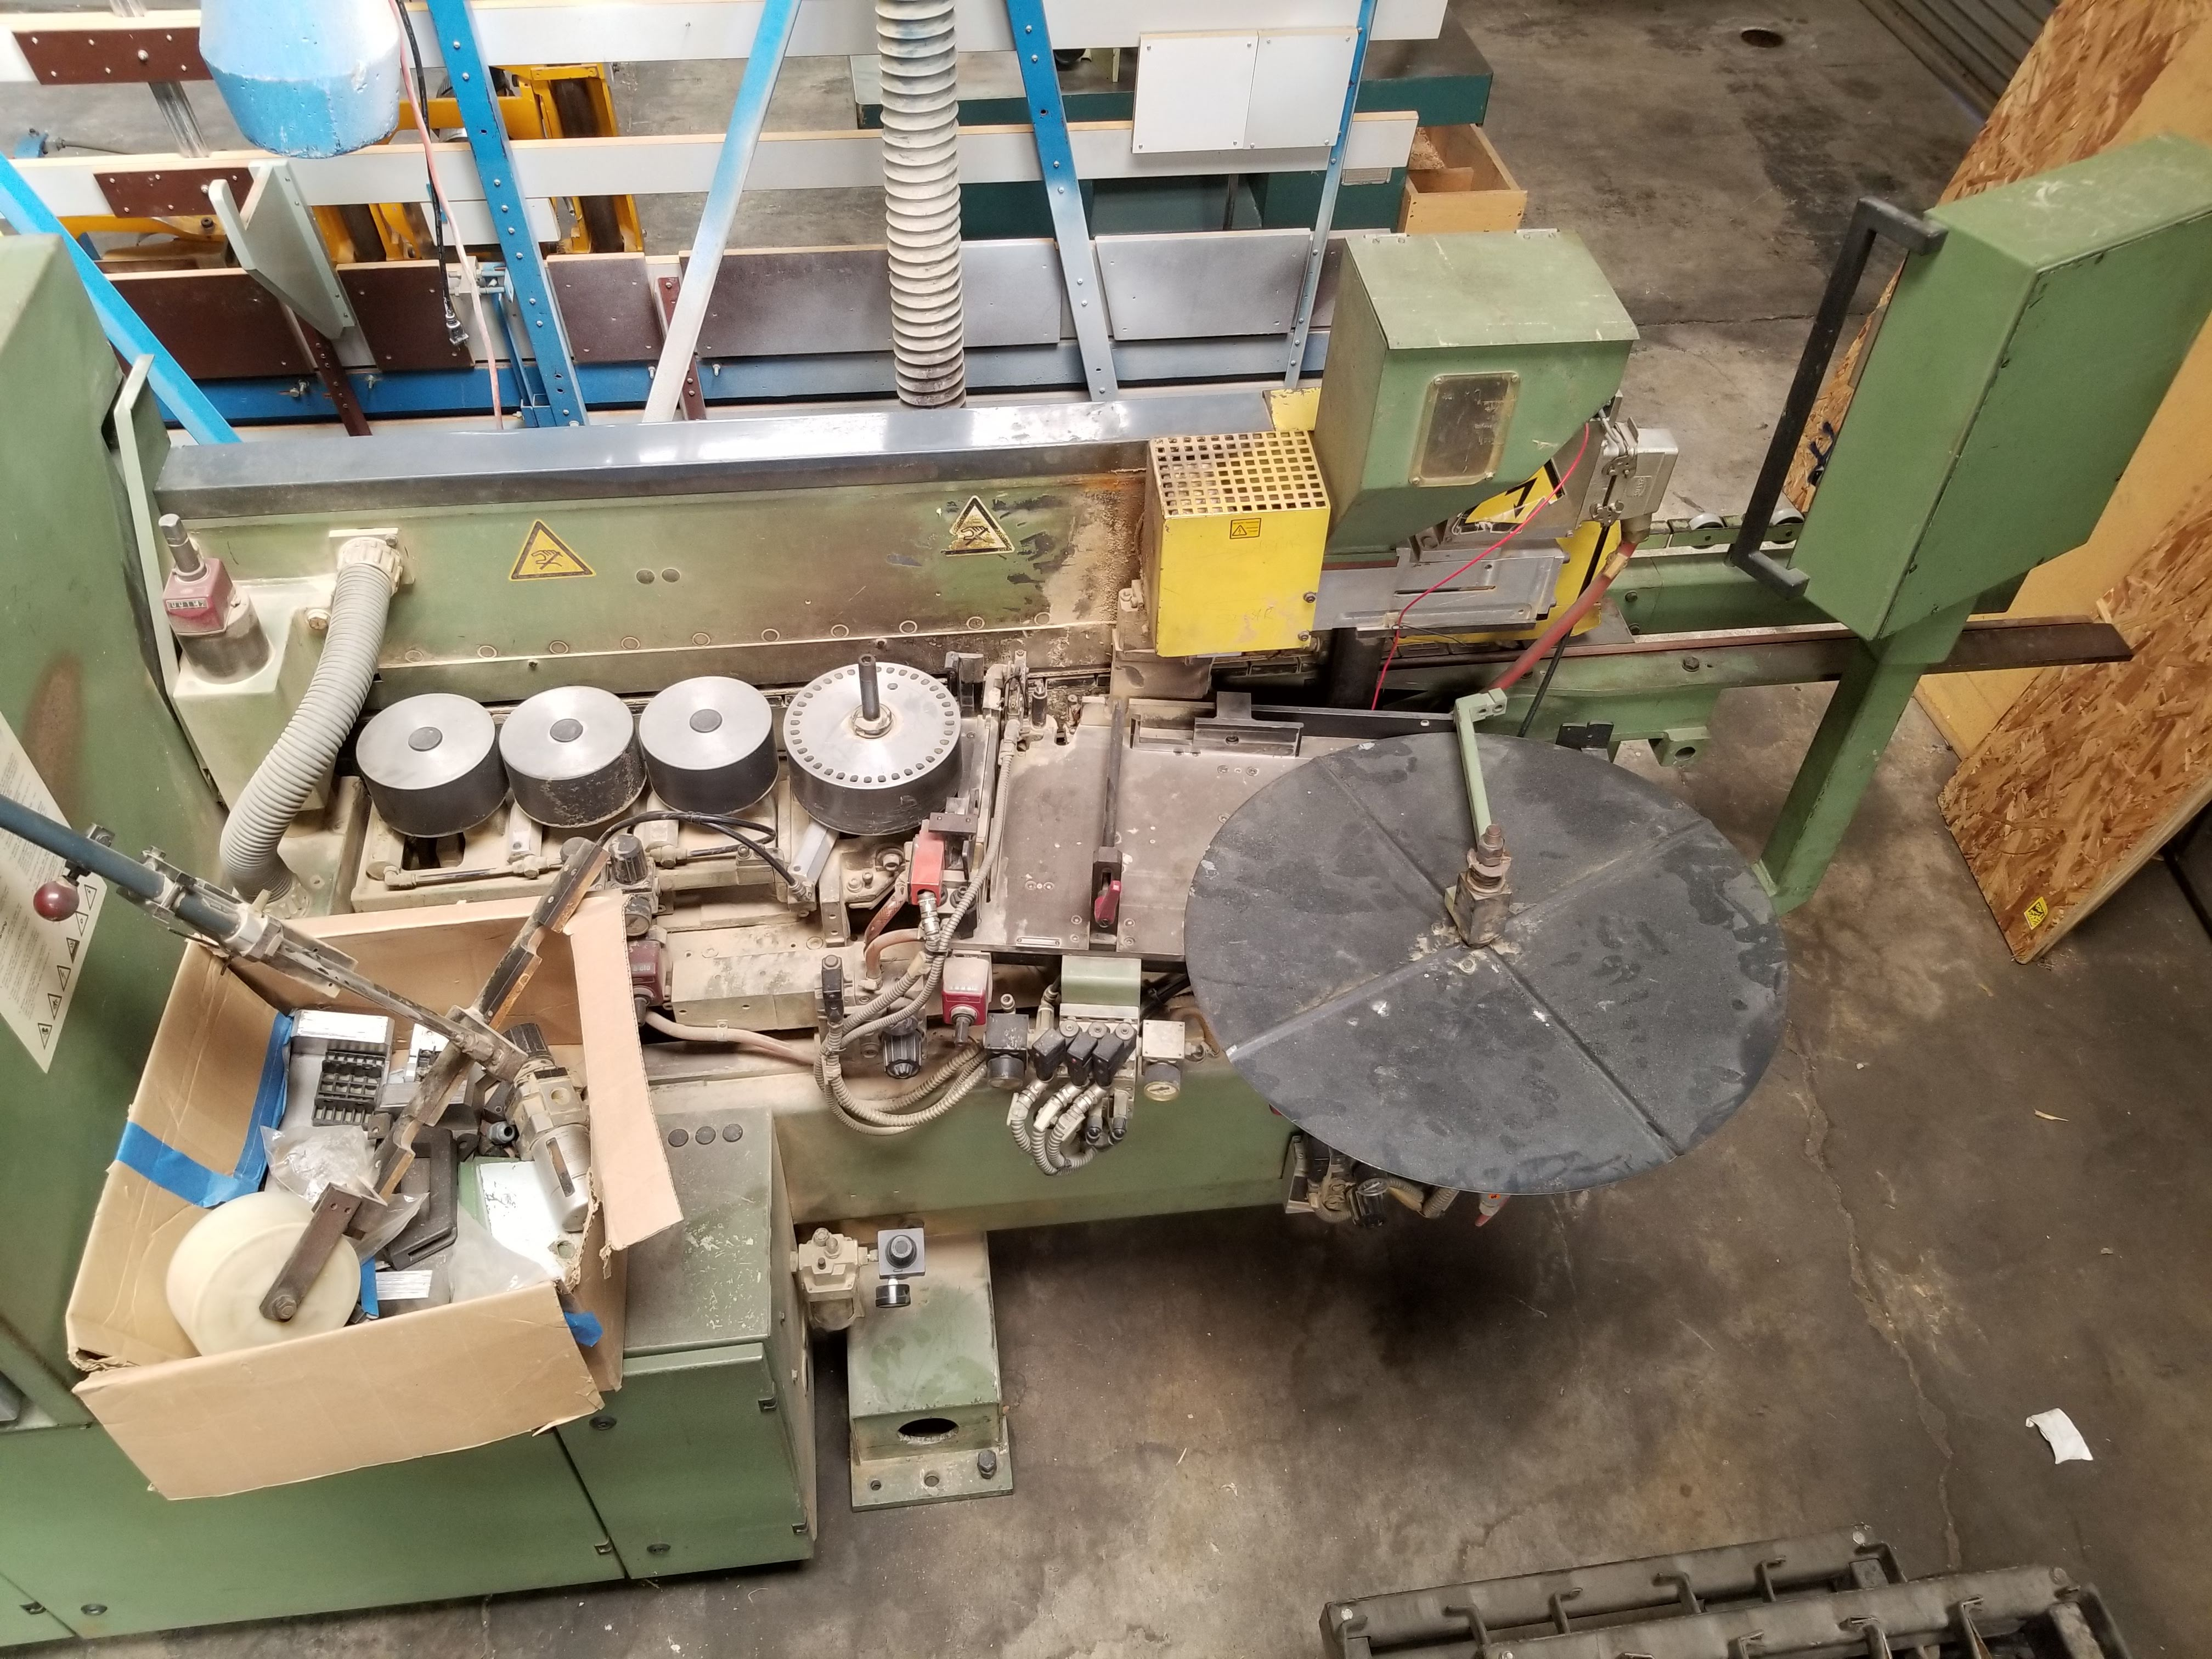 Lot 9 - Homag SE7400 Edgebander with attached conveyor, Control panel, Infeed banding system with table,